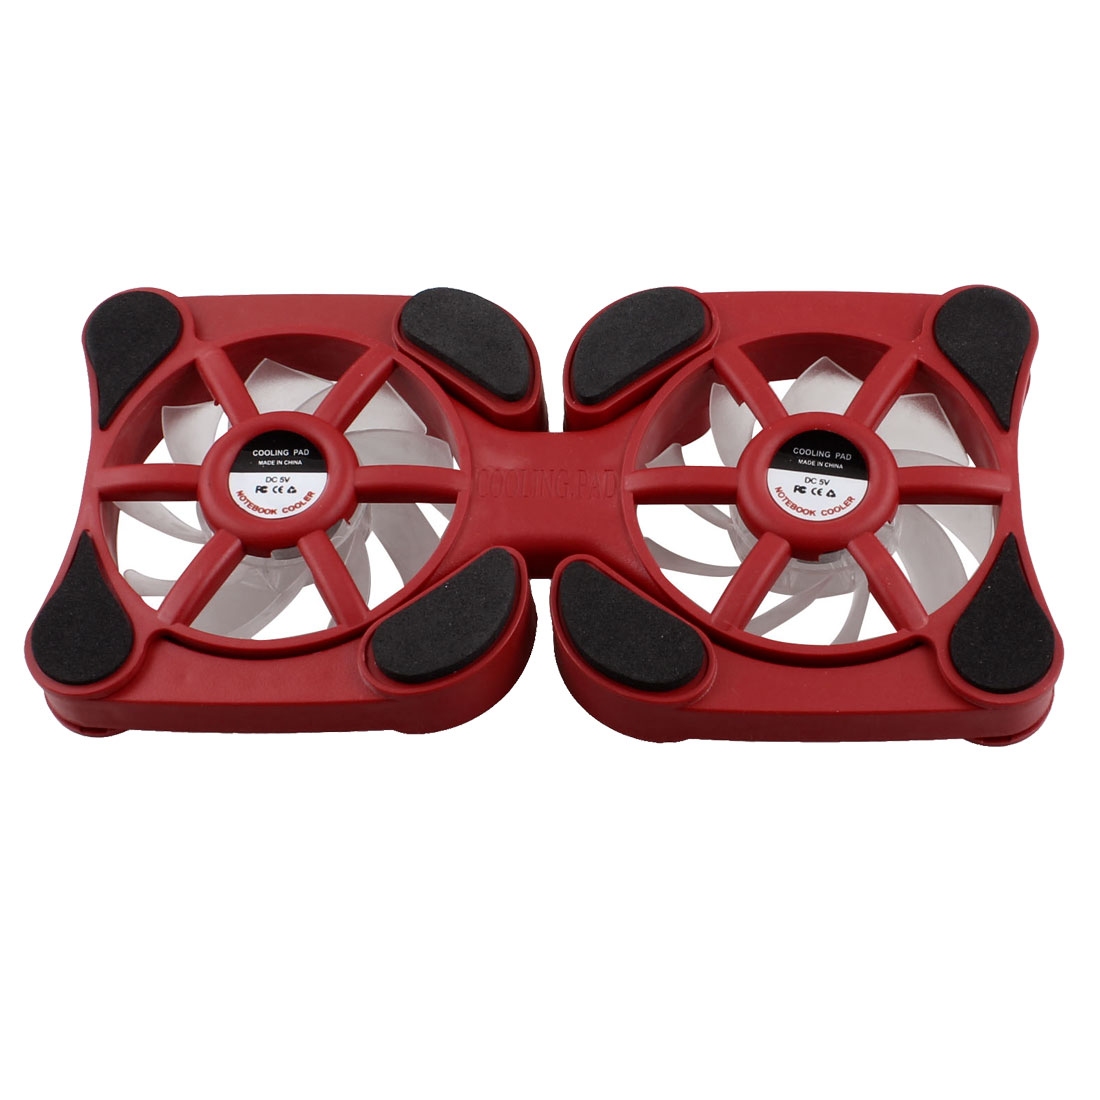 Laptop Notebook Red Plastic Shell Foldable USB Cooler Cooling Fan Pad DC 5V